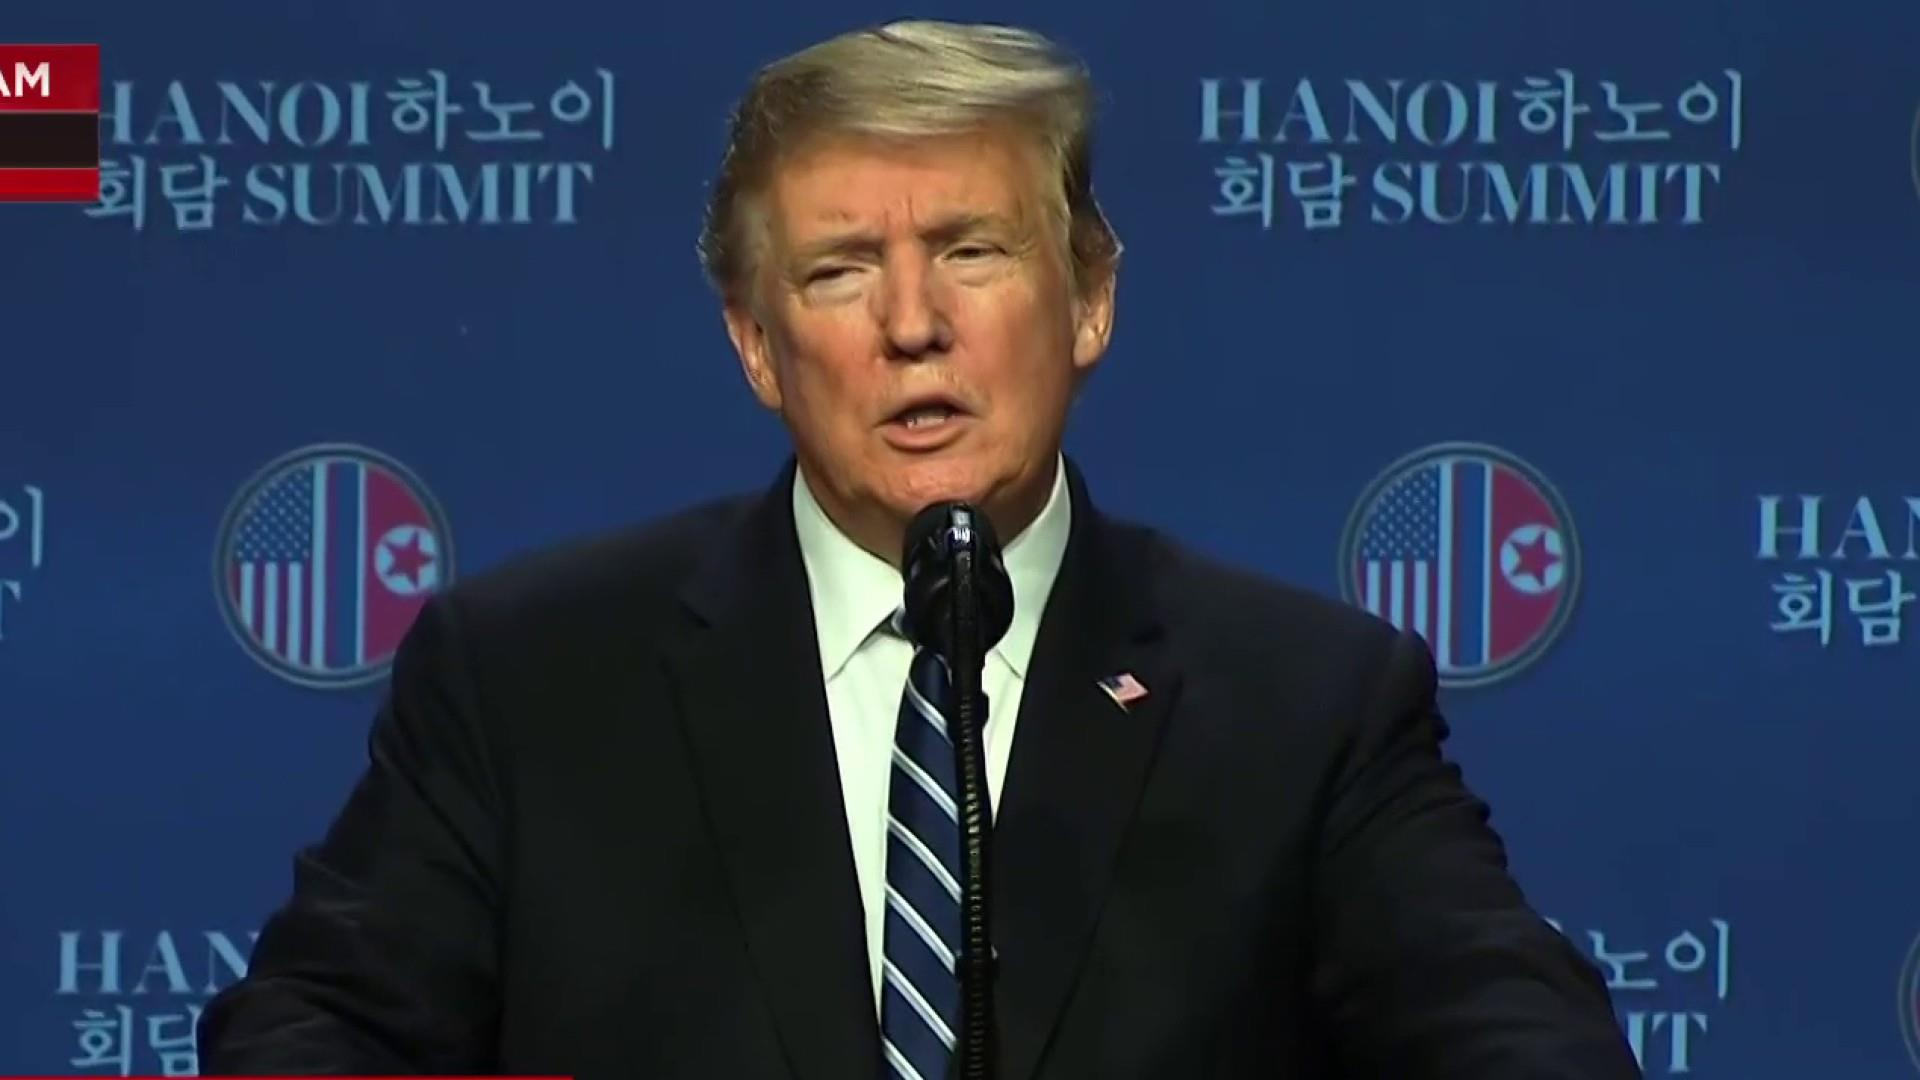 WATCH: President Trump's full press conference in Hanoi